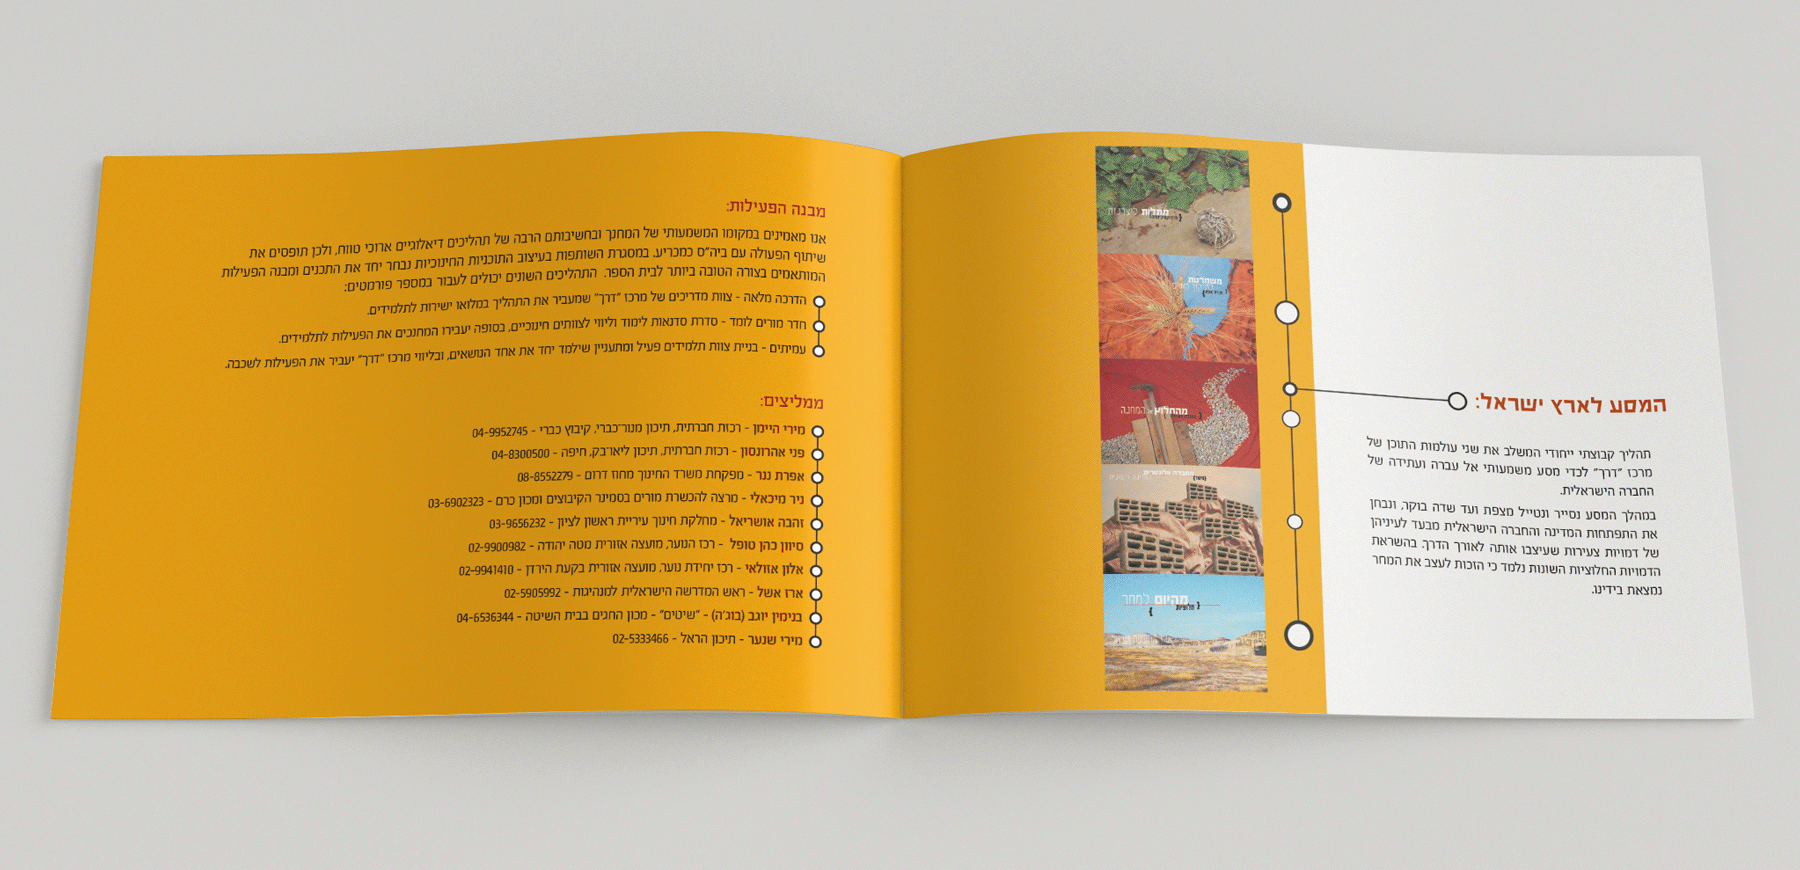 https://bigeyes.co.il/wp-content/uploads/2019/09/derech-3.png